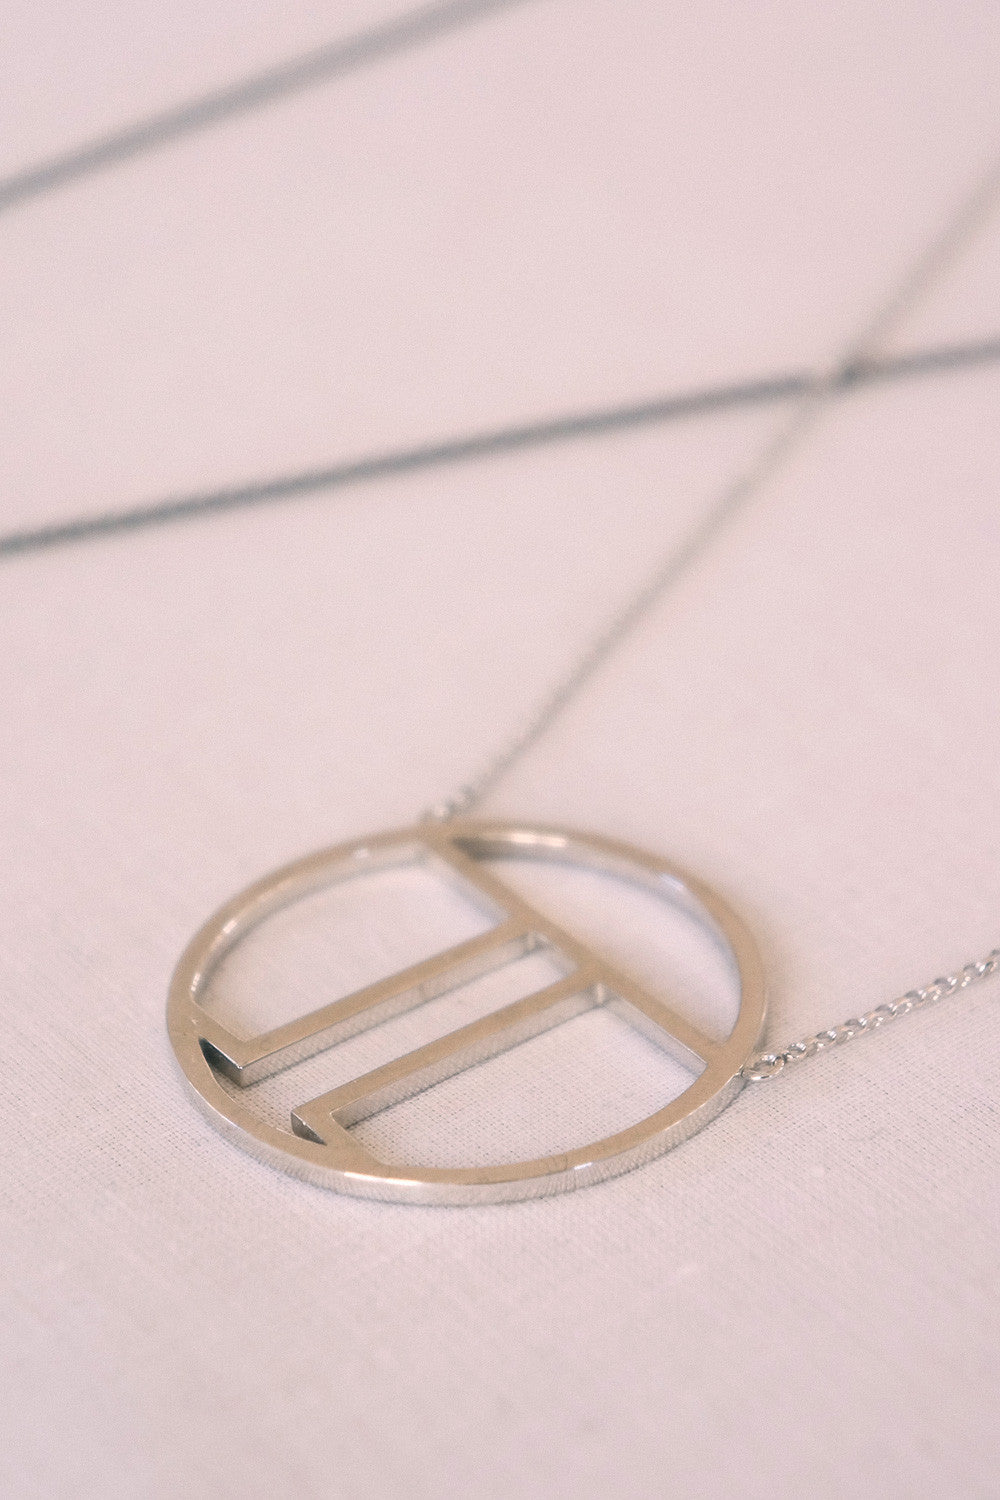 MOUTSATSOS - PI (π) GOLD PLATED SILVER - Jewellery - Ozon Boutique - 9